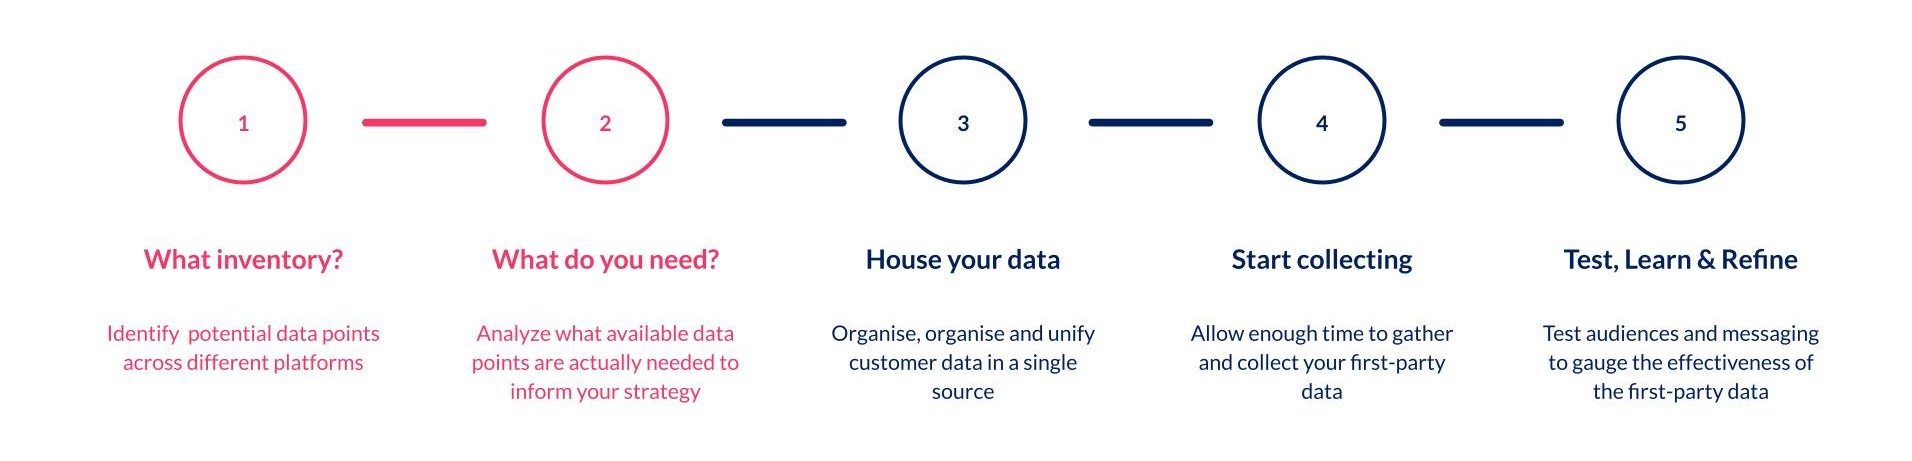 Future-proof your business with first-party data - Where to begin